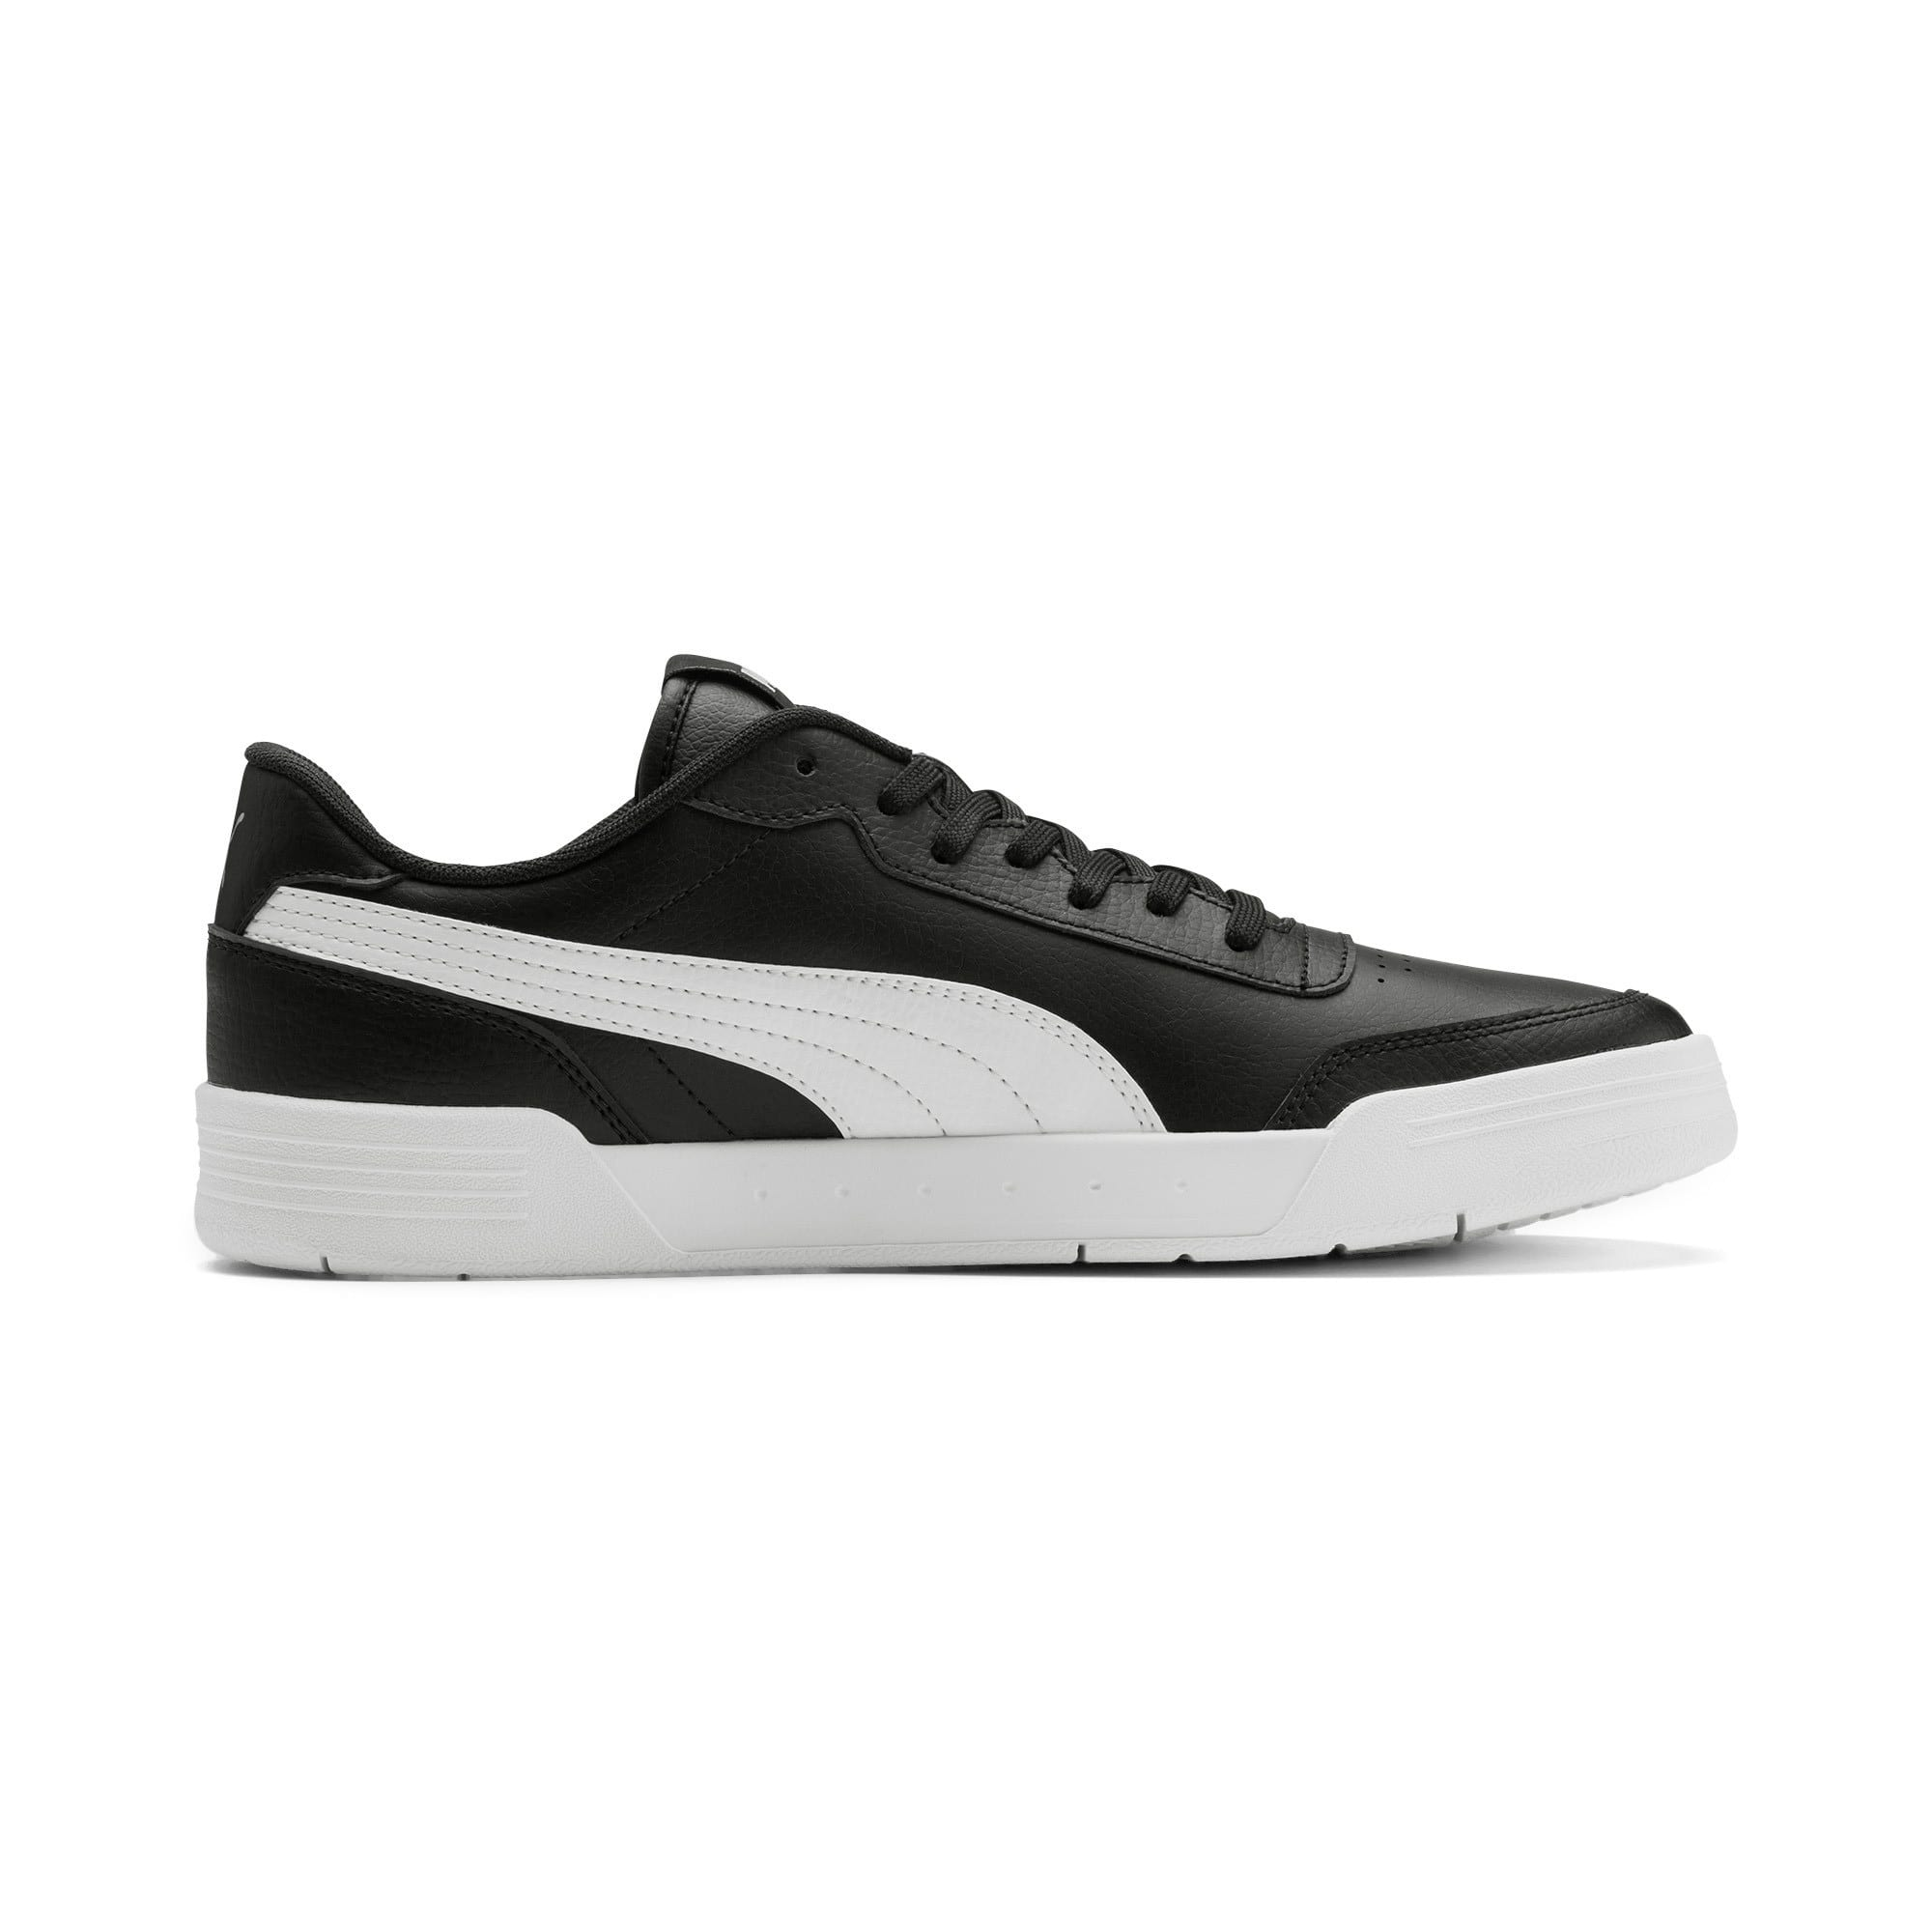 Thumbnail 6 of Caracal Sneakers, Puma Black-Puma White, medium